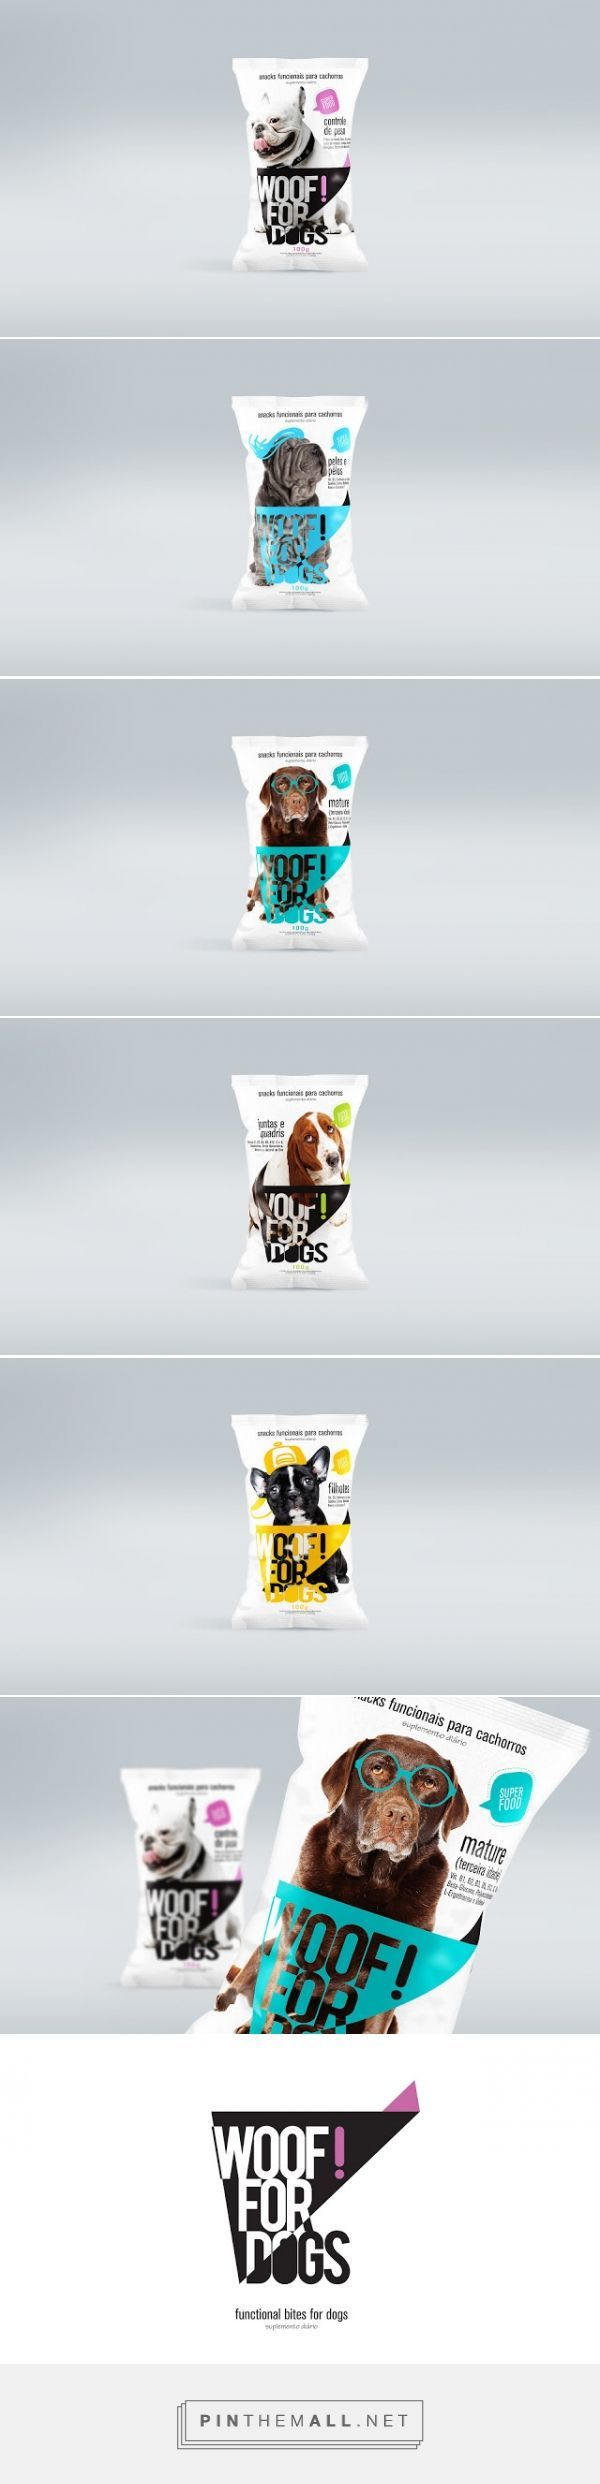 WOOF! FOR DOGS snack packaging designed by Agência BUD - http://www.packagingoftheworld.com/2015/10/woof-for-dogs.html